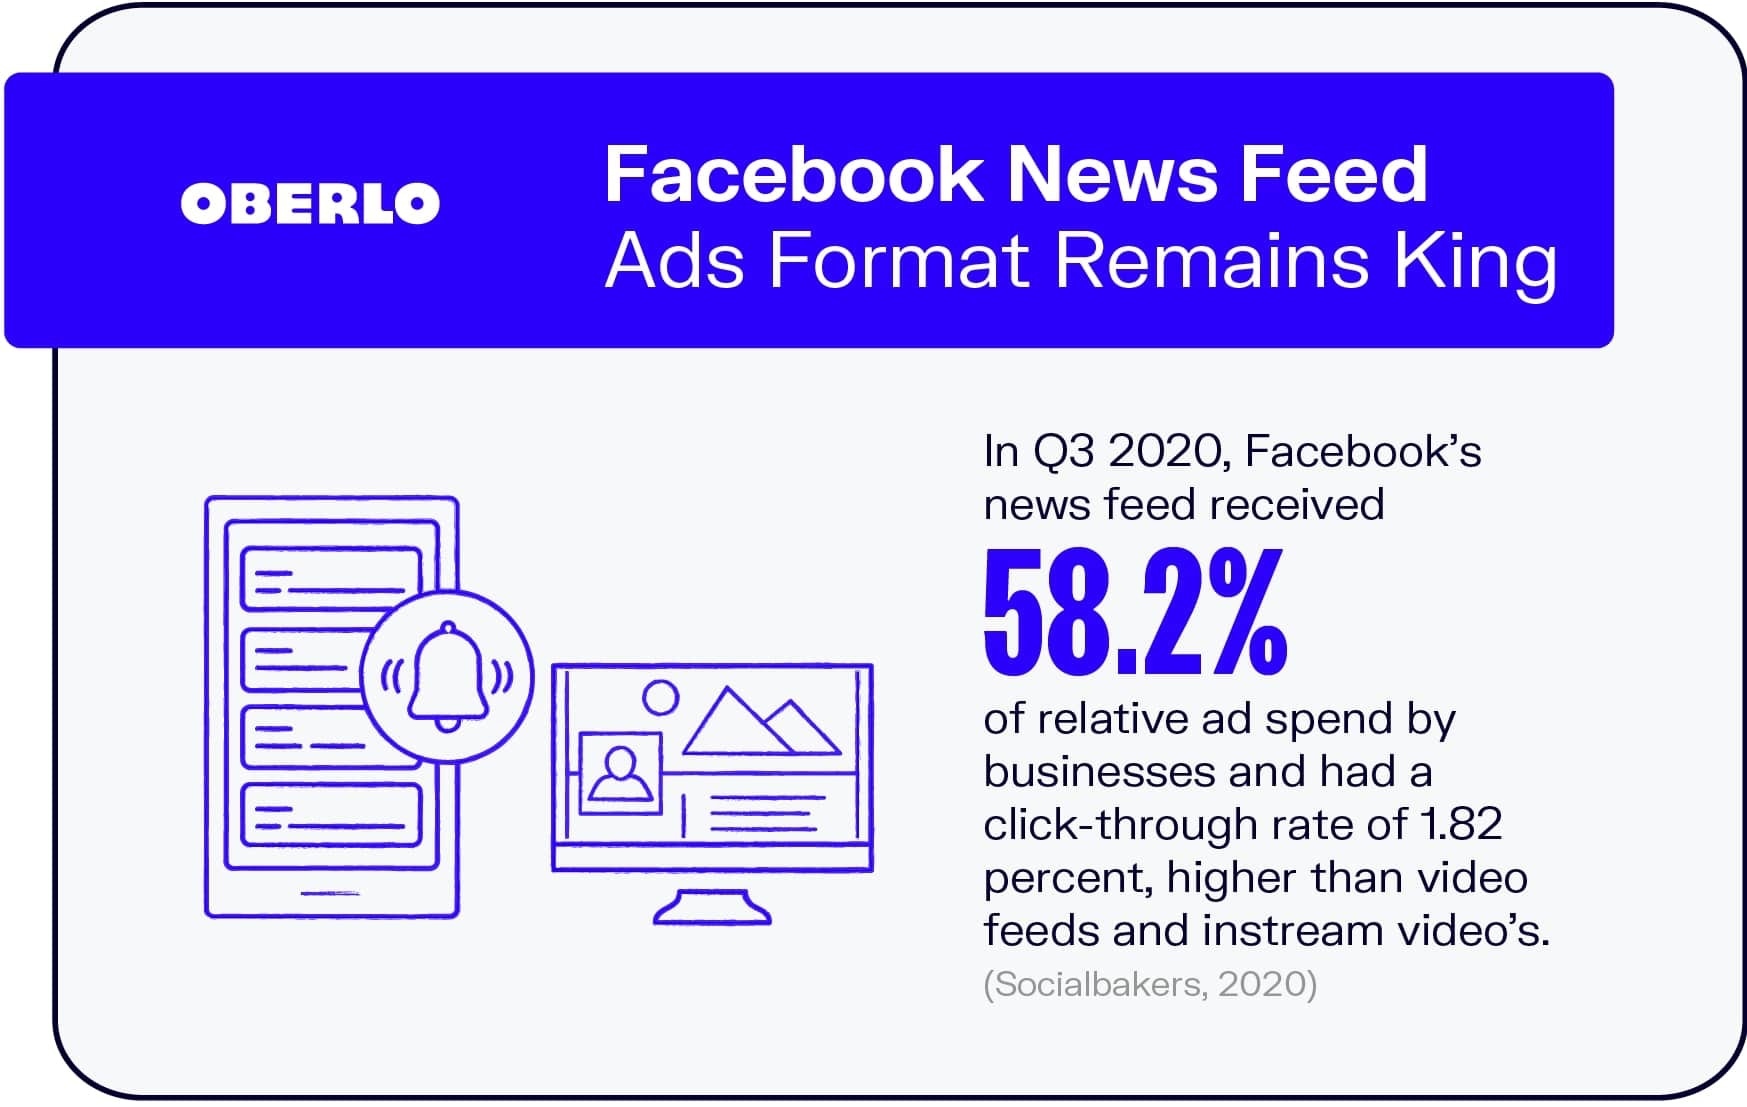 Facebook News Feed Ads Format Remains King